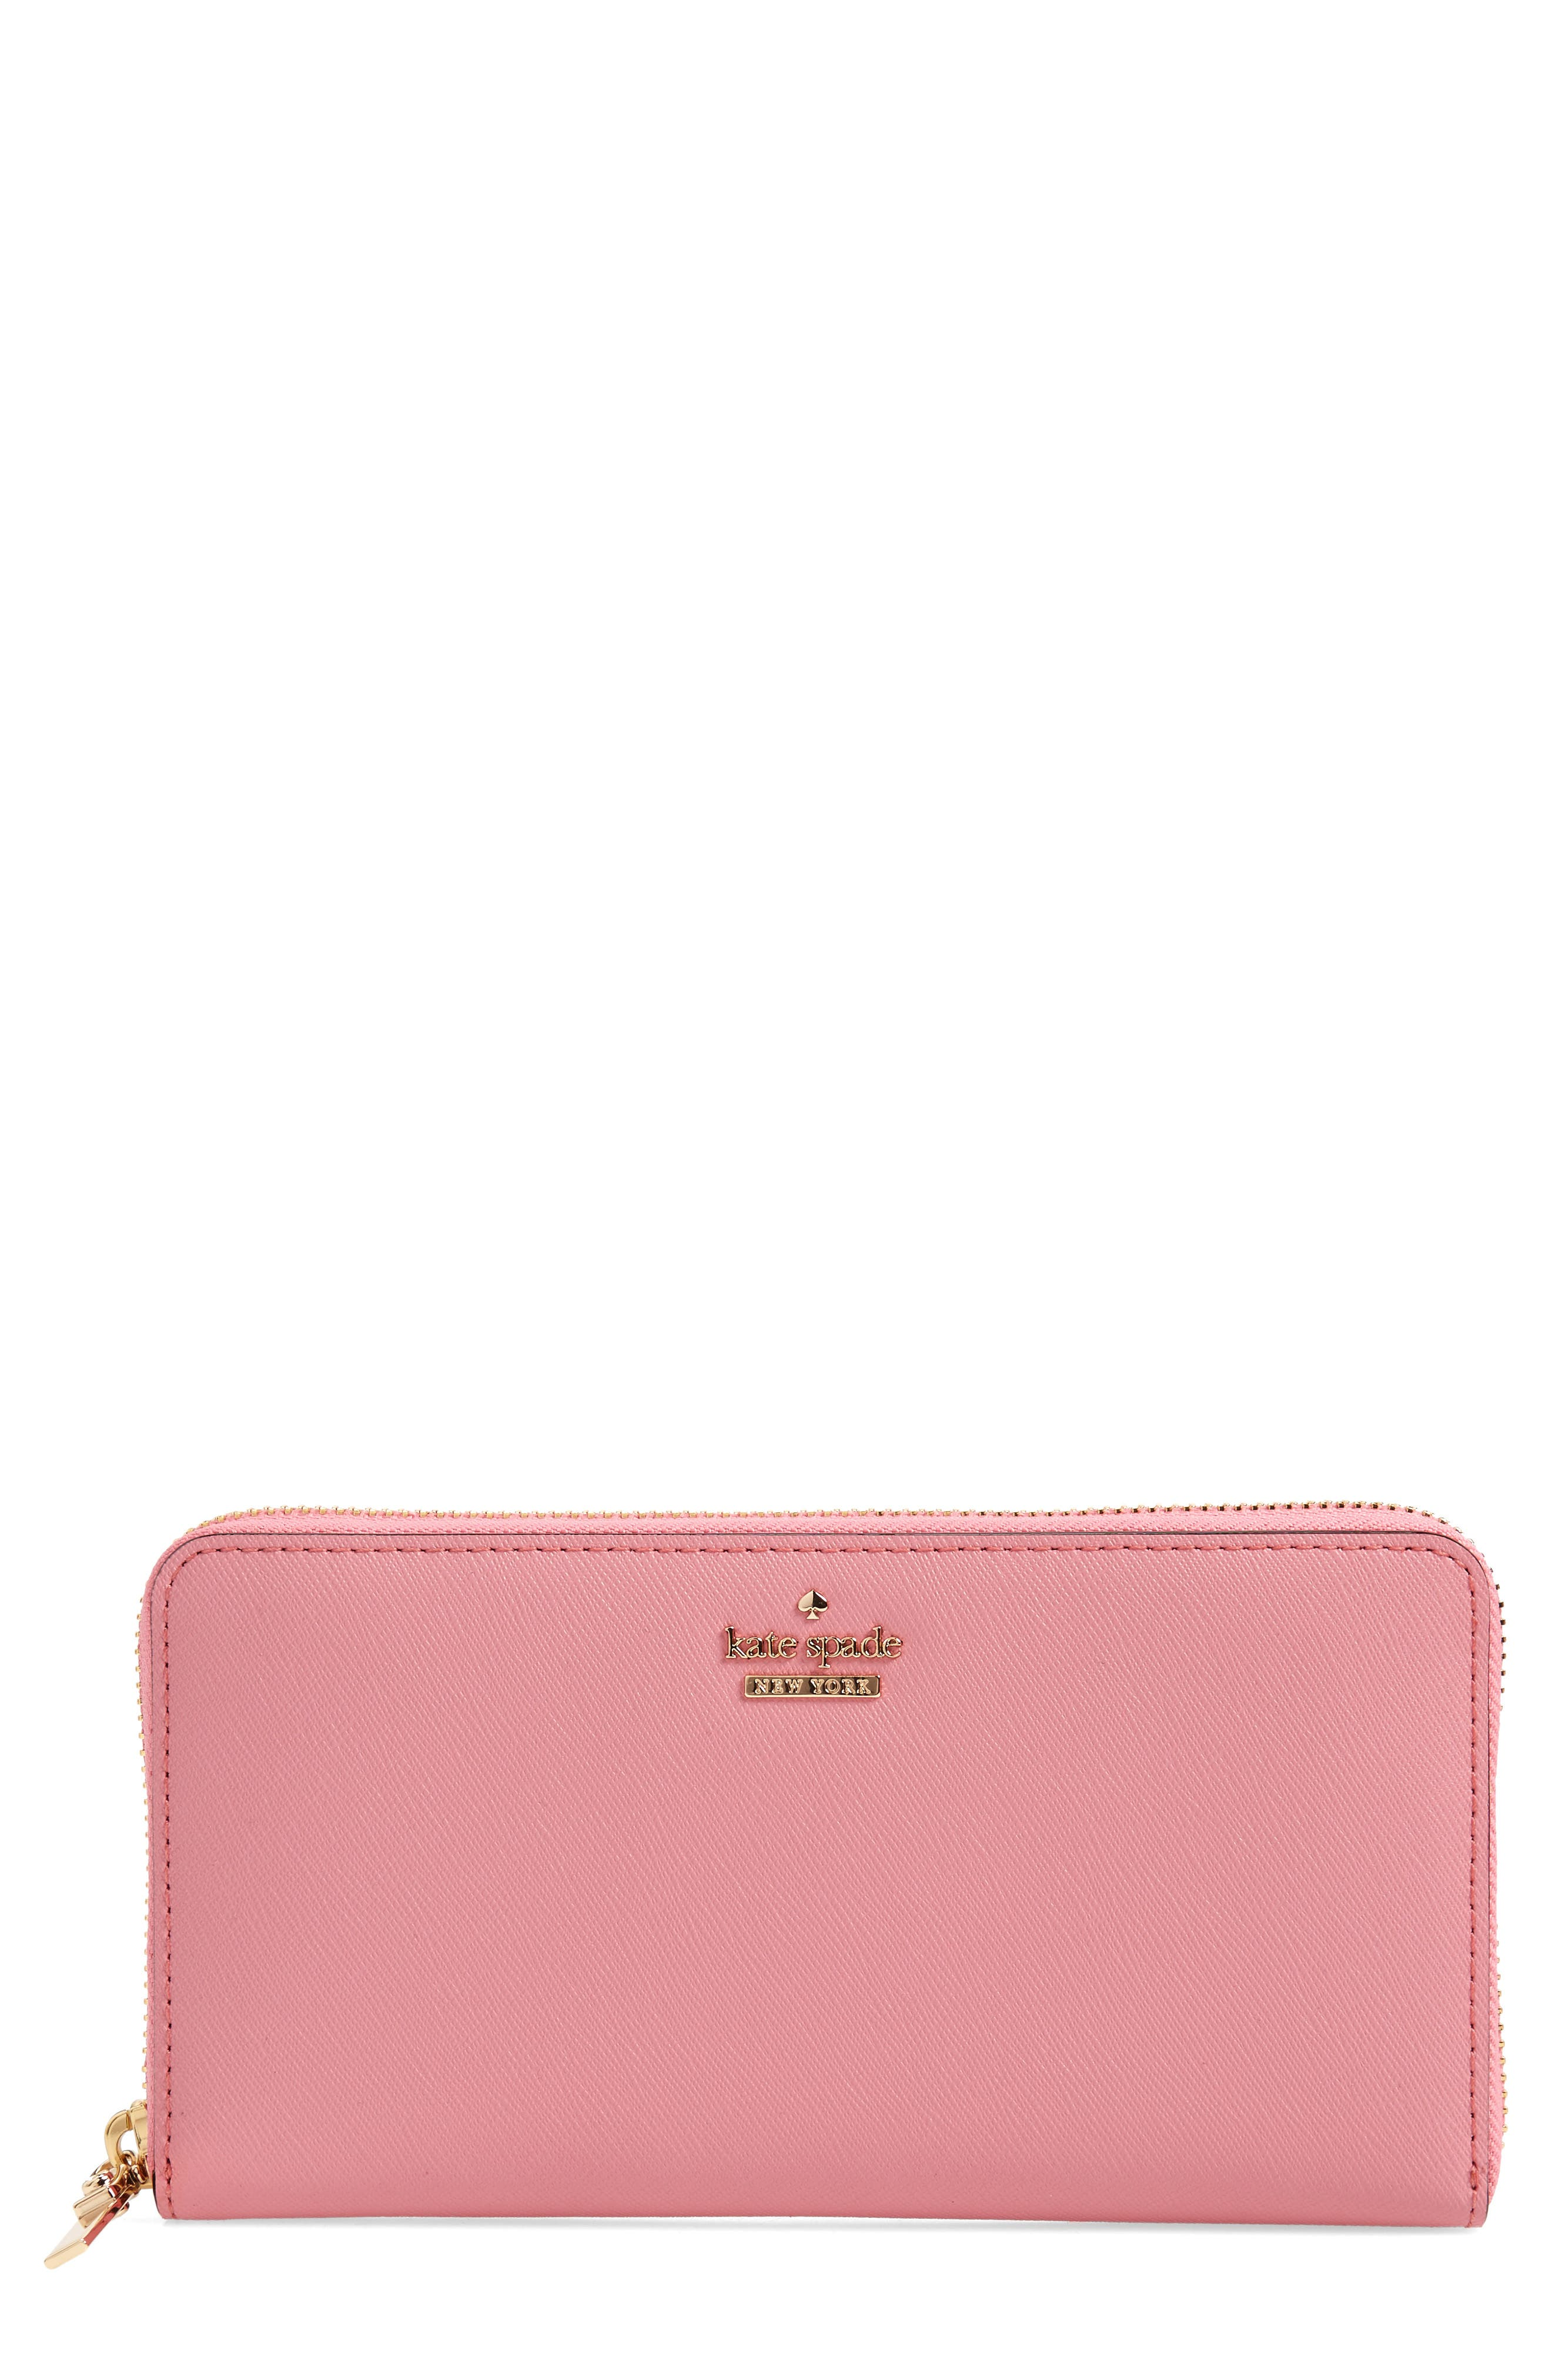 'cameron street - lacey' leather wallet,                             Main thumbnail 6, color,